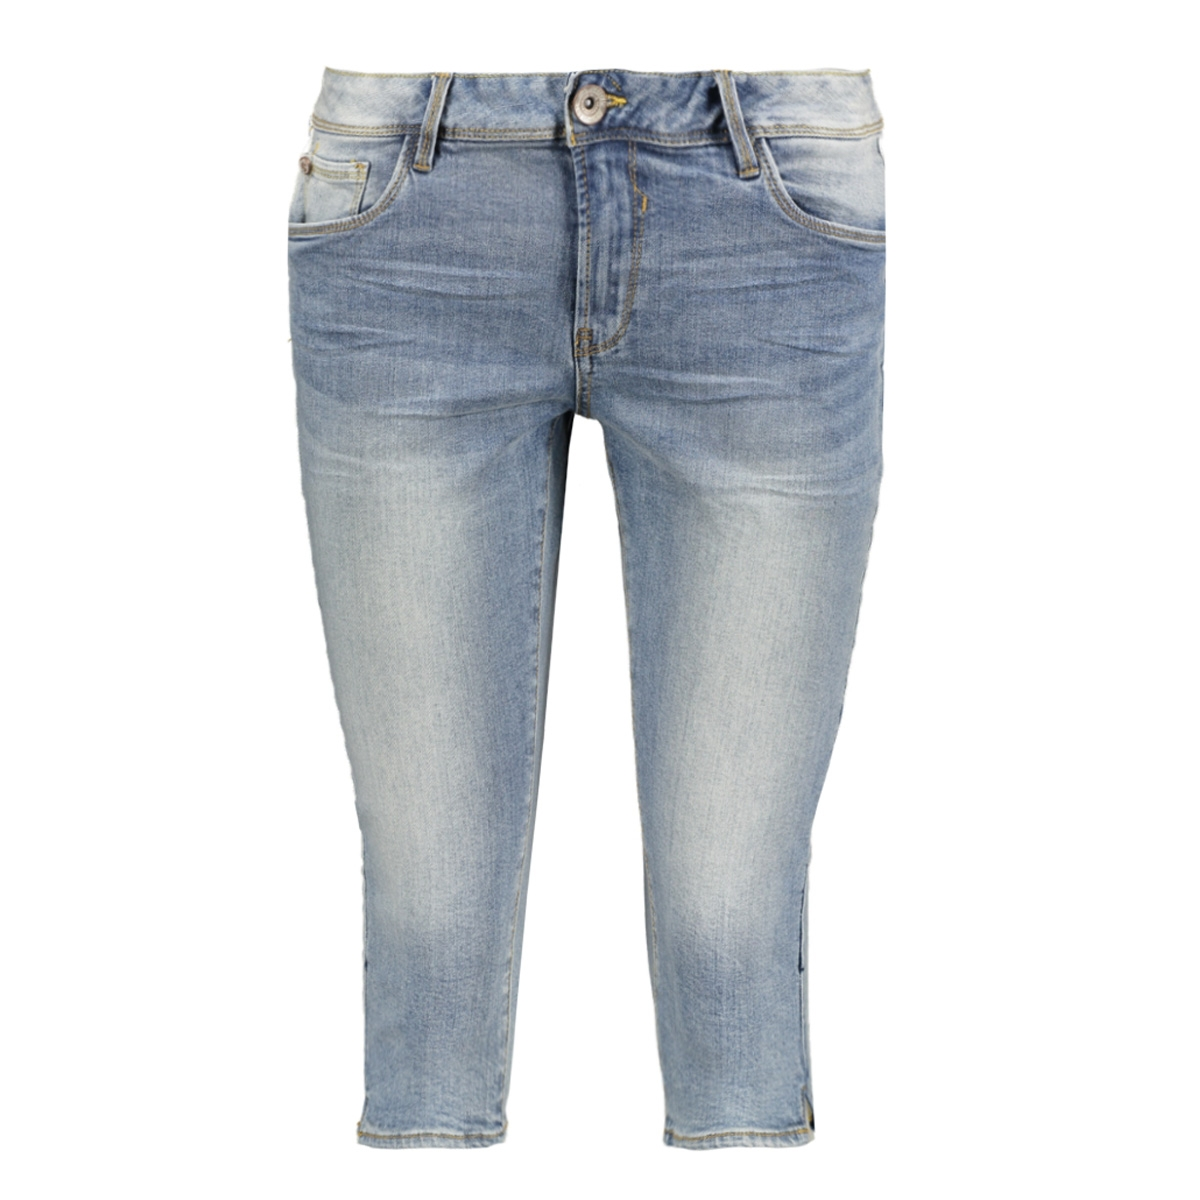 278 rachelle capri garcia jeans 2687 flow denim light used